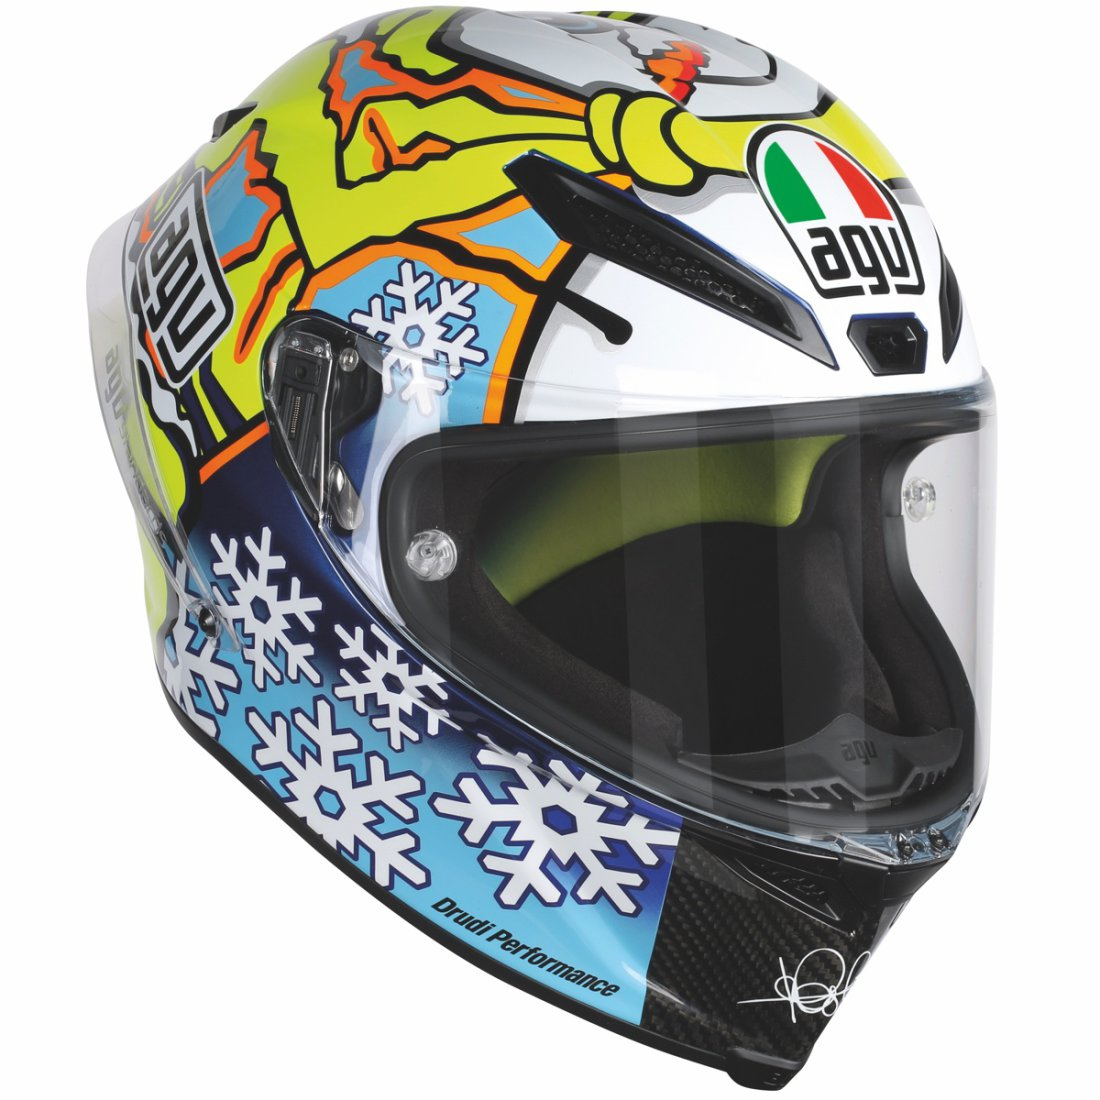 agv pista gp pinlock rossi winter test 2016 limited. Black Bedroom Furniture Sets. Home Design Ideas